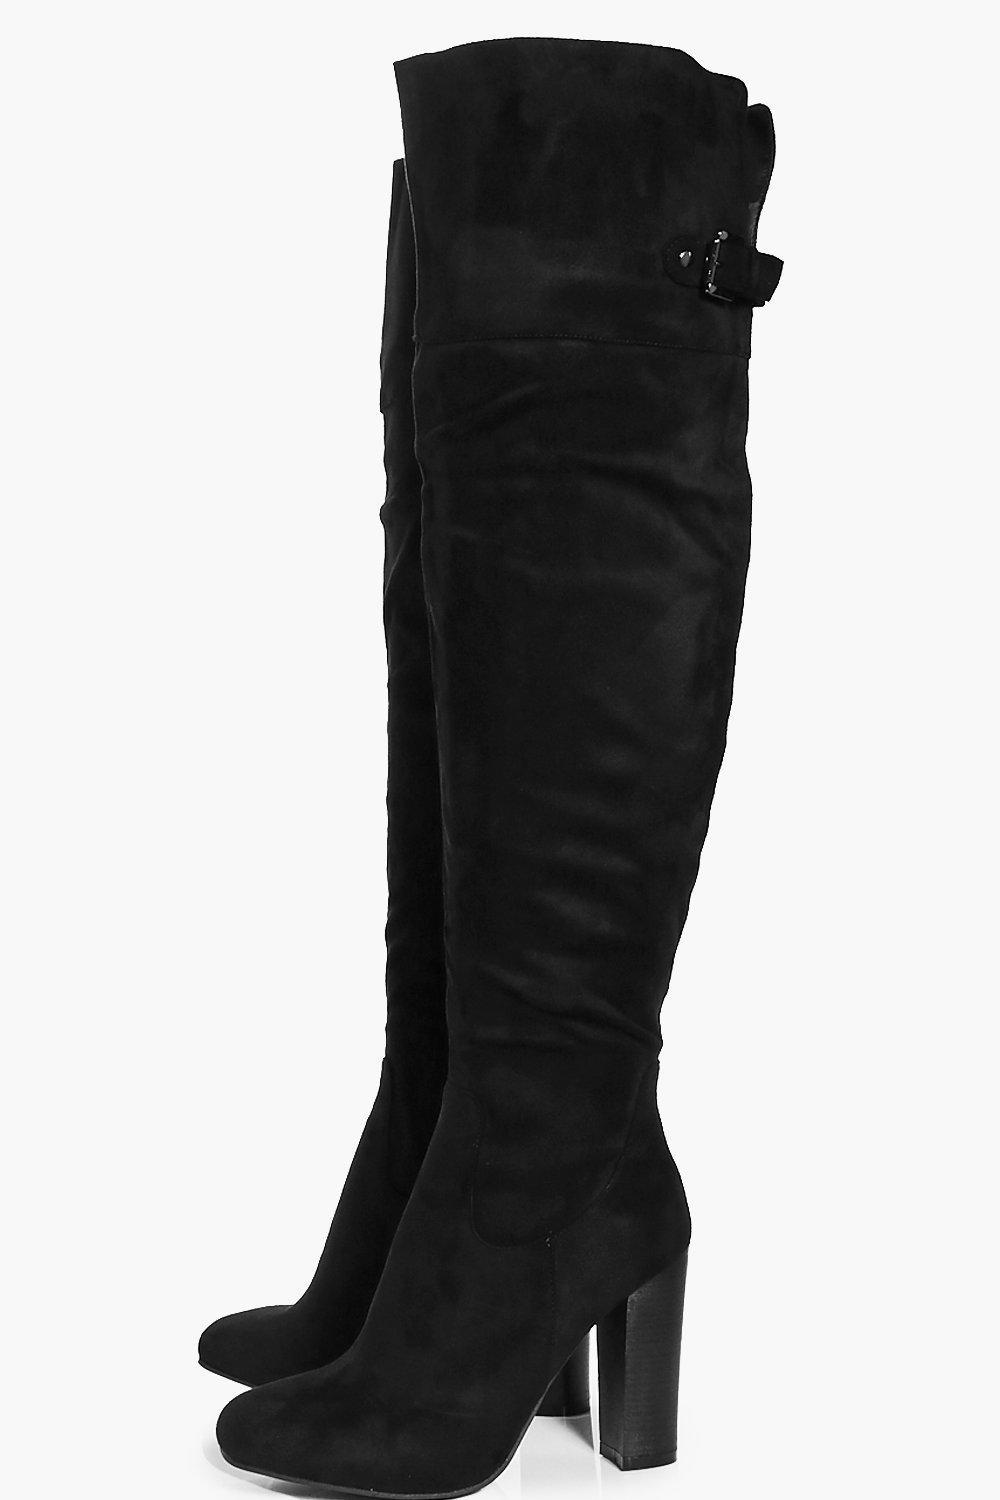 42fed4a00dc Lyst - Boohoo Amy Block Heel Back Vent Over The Knee Boot in Black